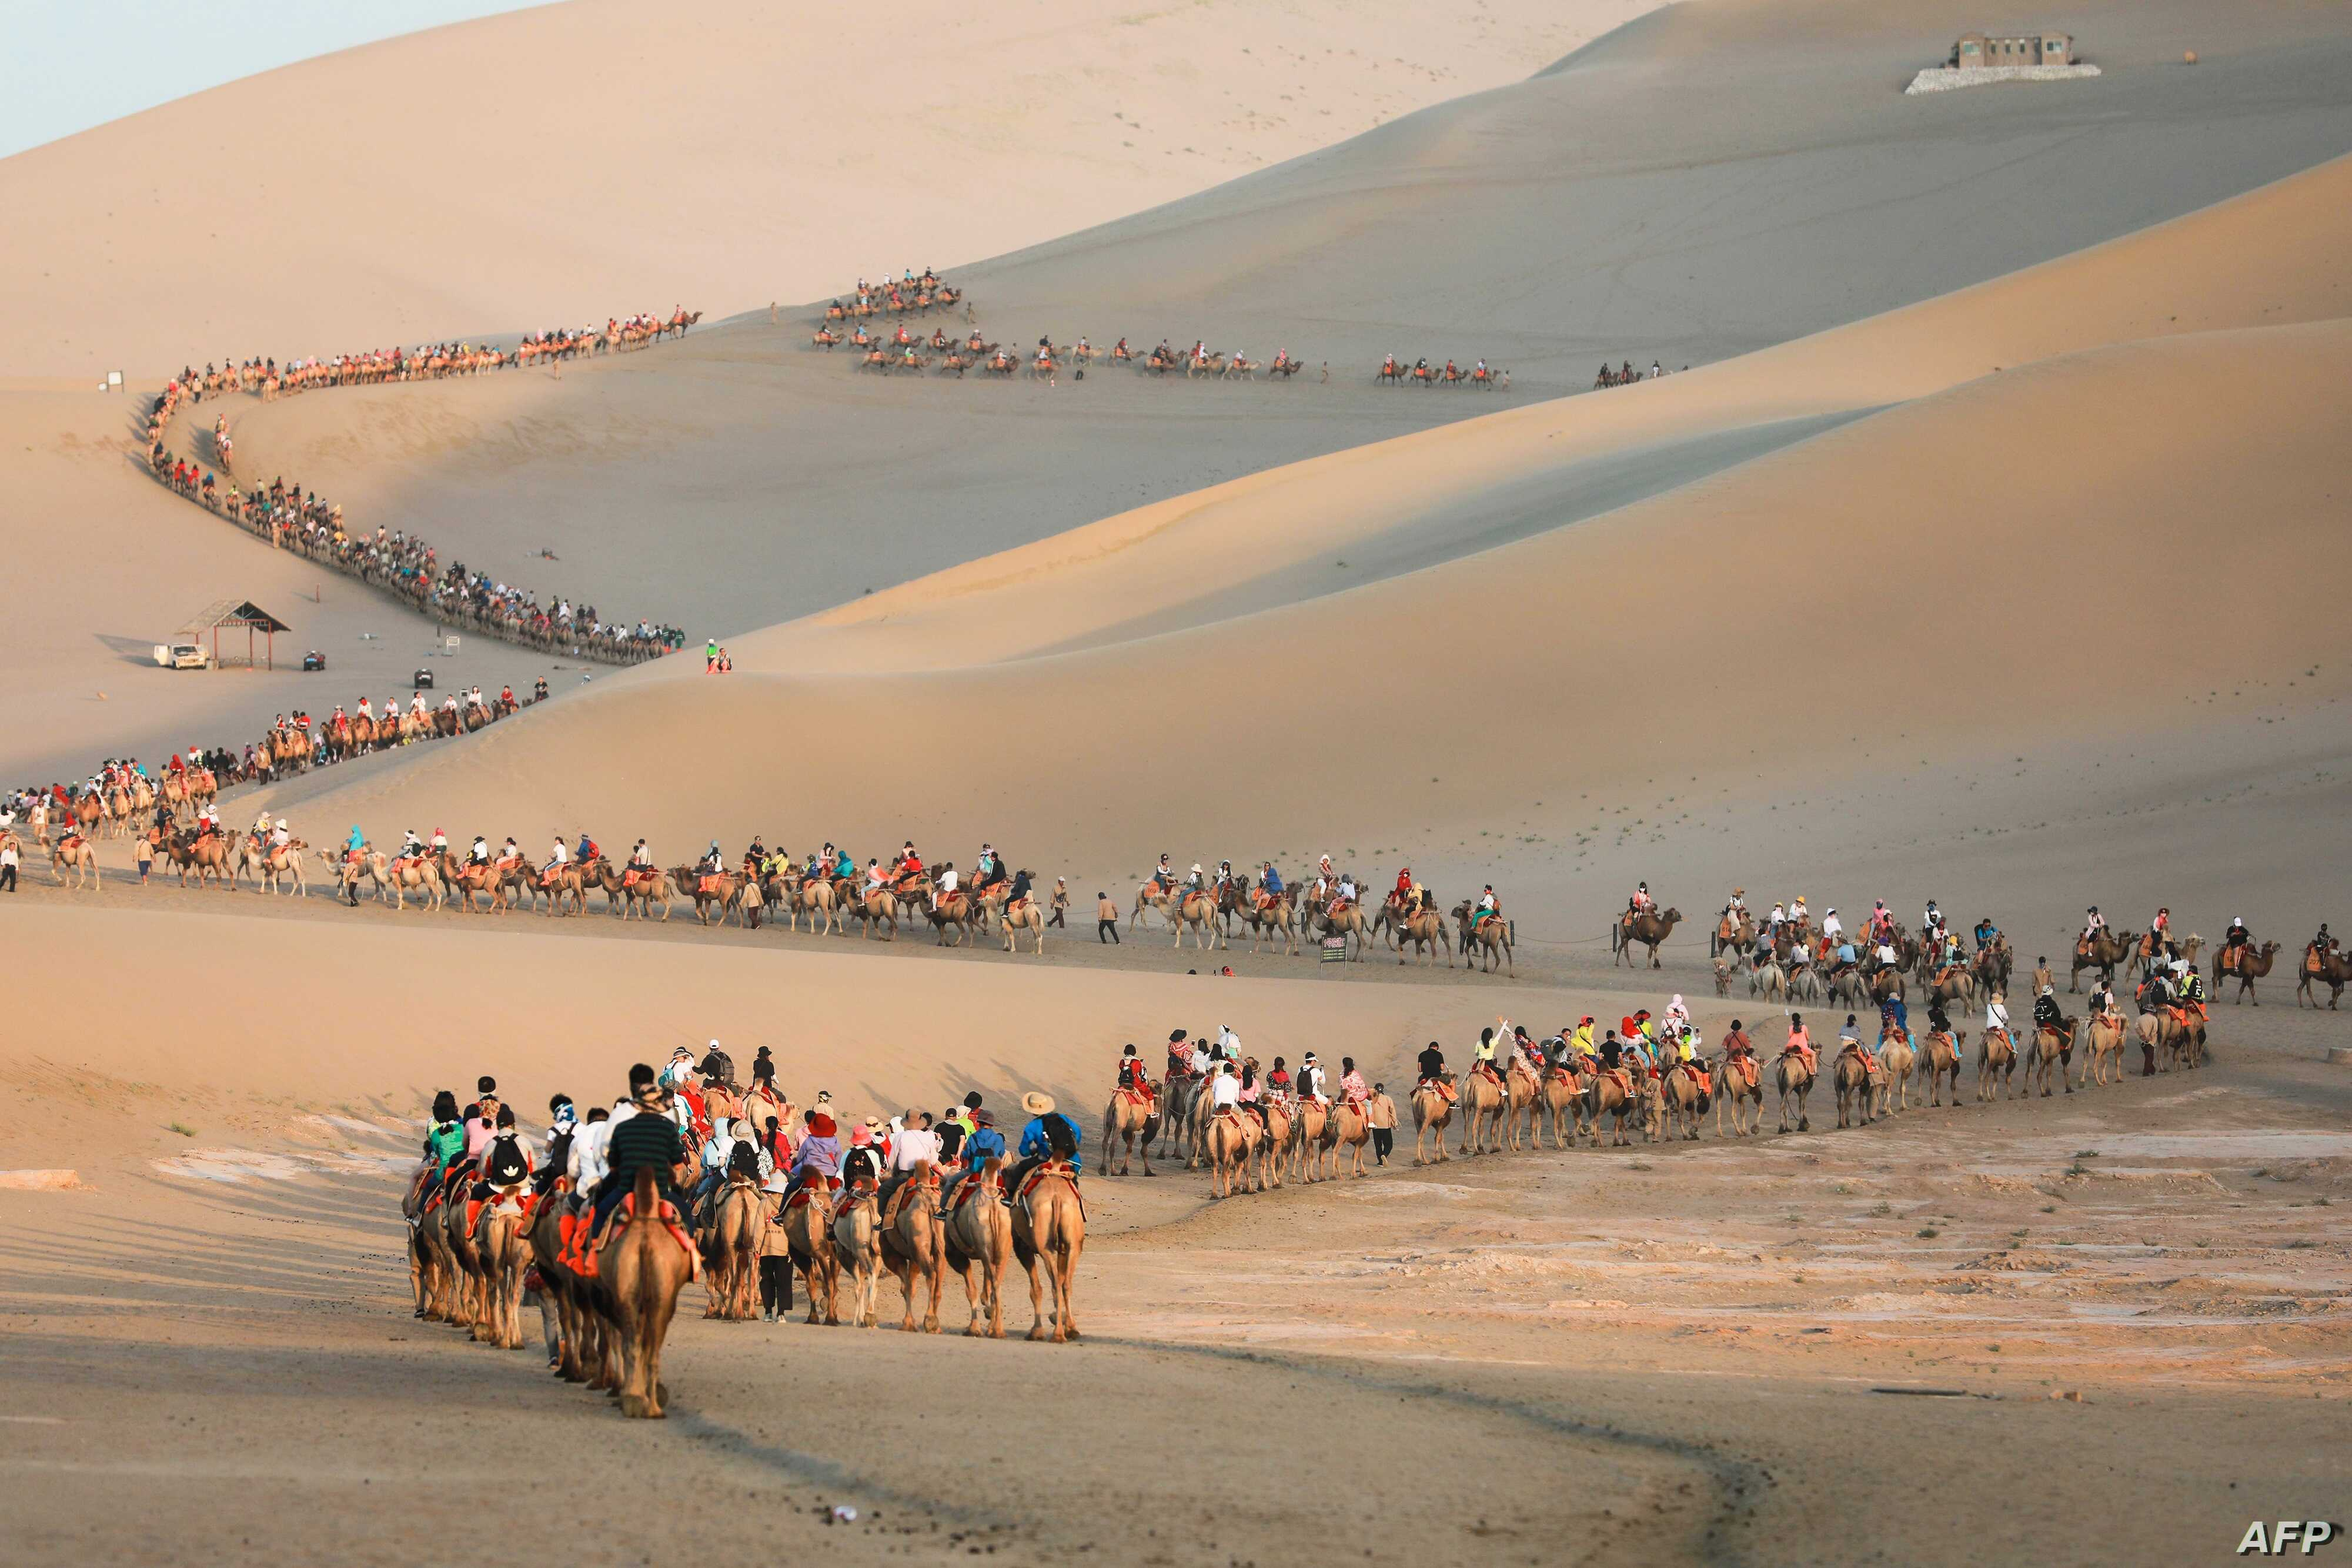 Tourists ride camels in the desert in Dunhuang in China's northwestern Gansu province.